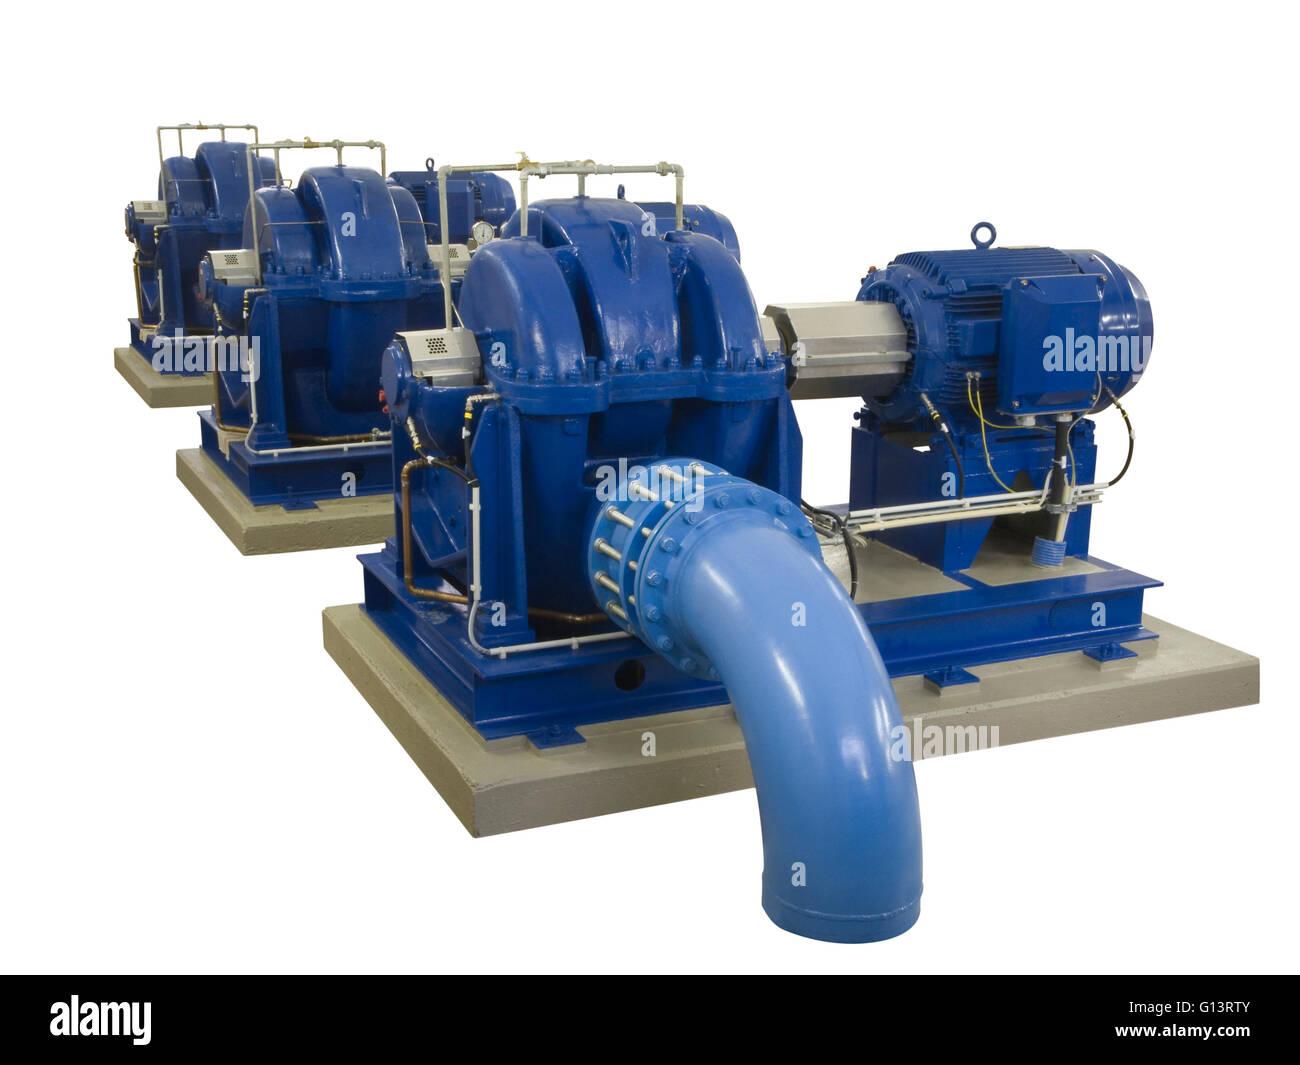 Blue industrial pump with electric motor on concrete base isolated on white background Stock Photo